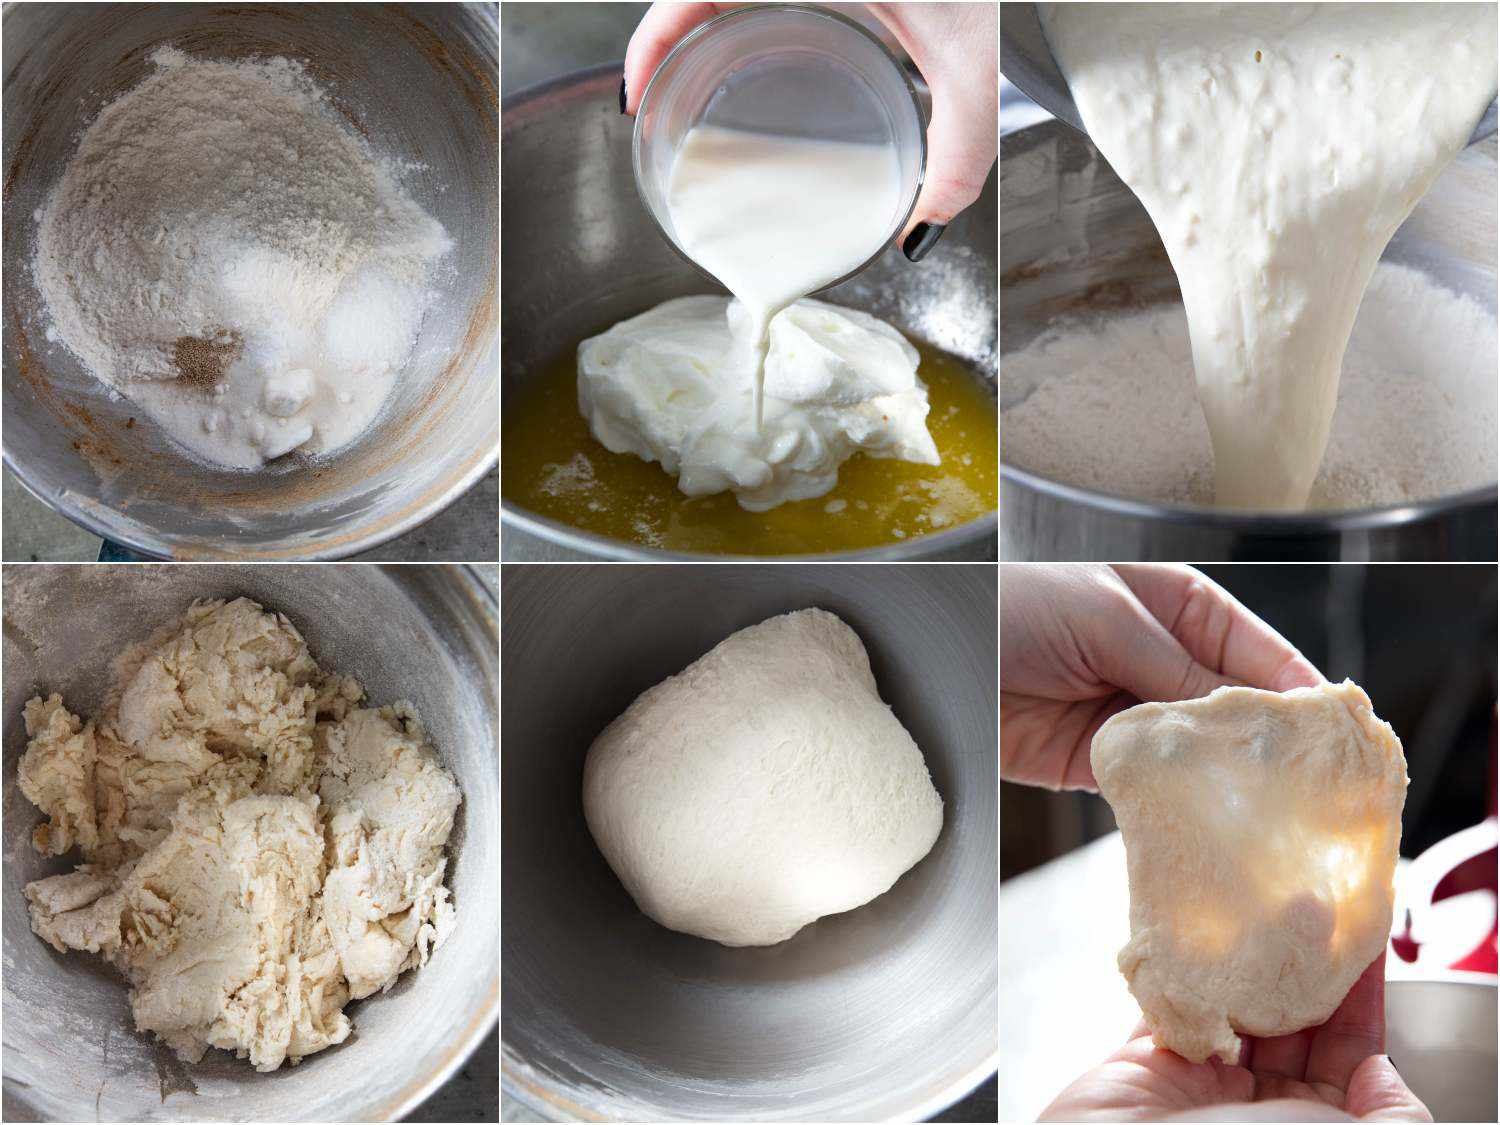 Photo collage showing cinnamon roll dough: combining dry ingredients, heating wet ingredients, then kneading everything in a stand mixer until gluten is well-developed.